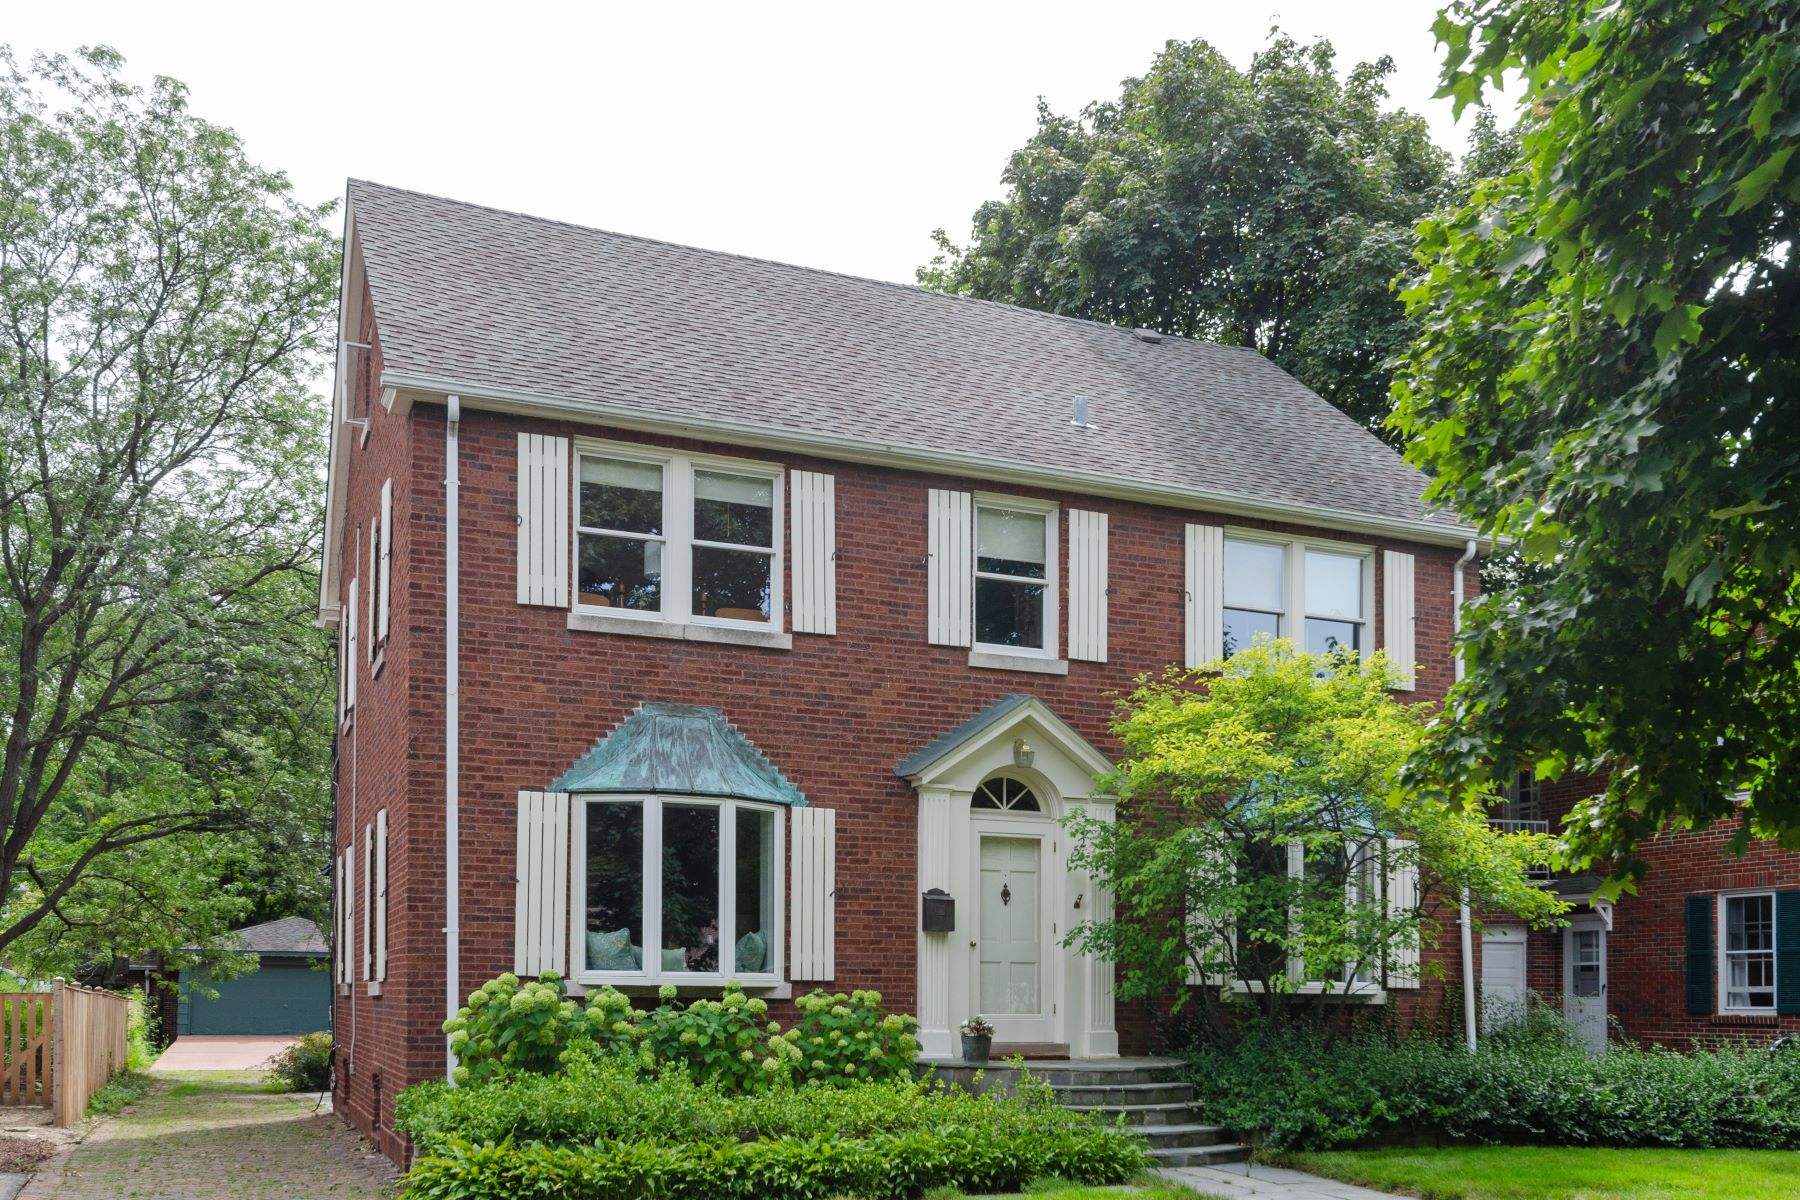 Single Family Homes for Active at Exquisite Red Brick Colonial 1152 Oak Street Winnetka, Illinois 60093 United States